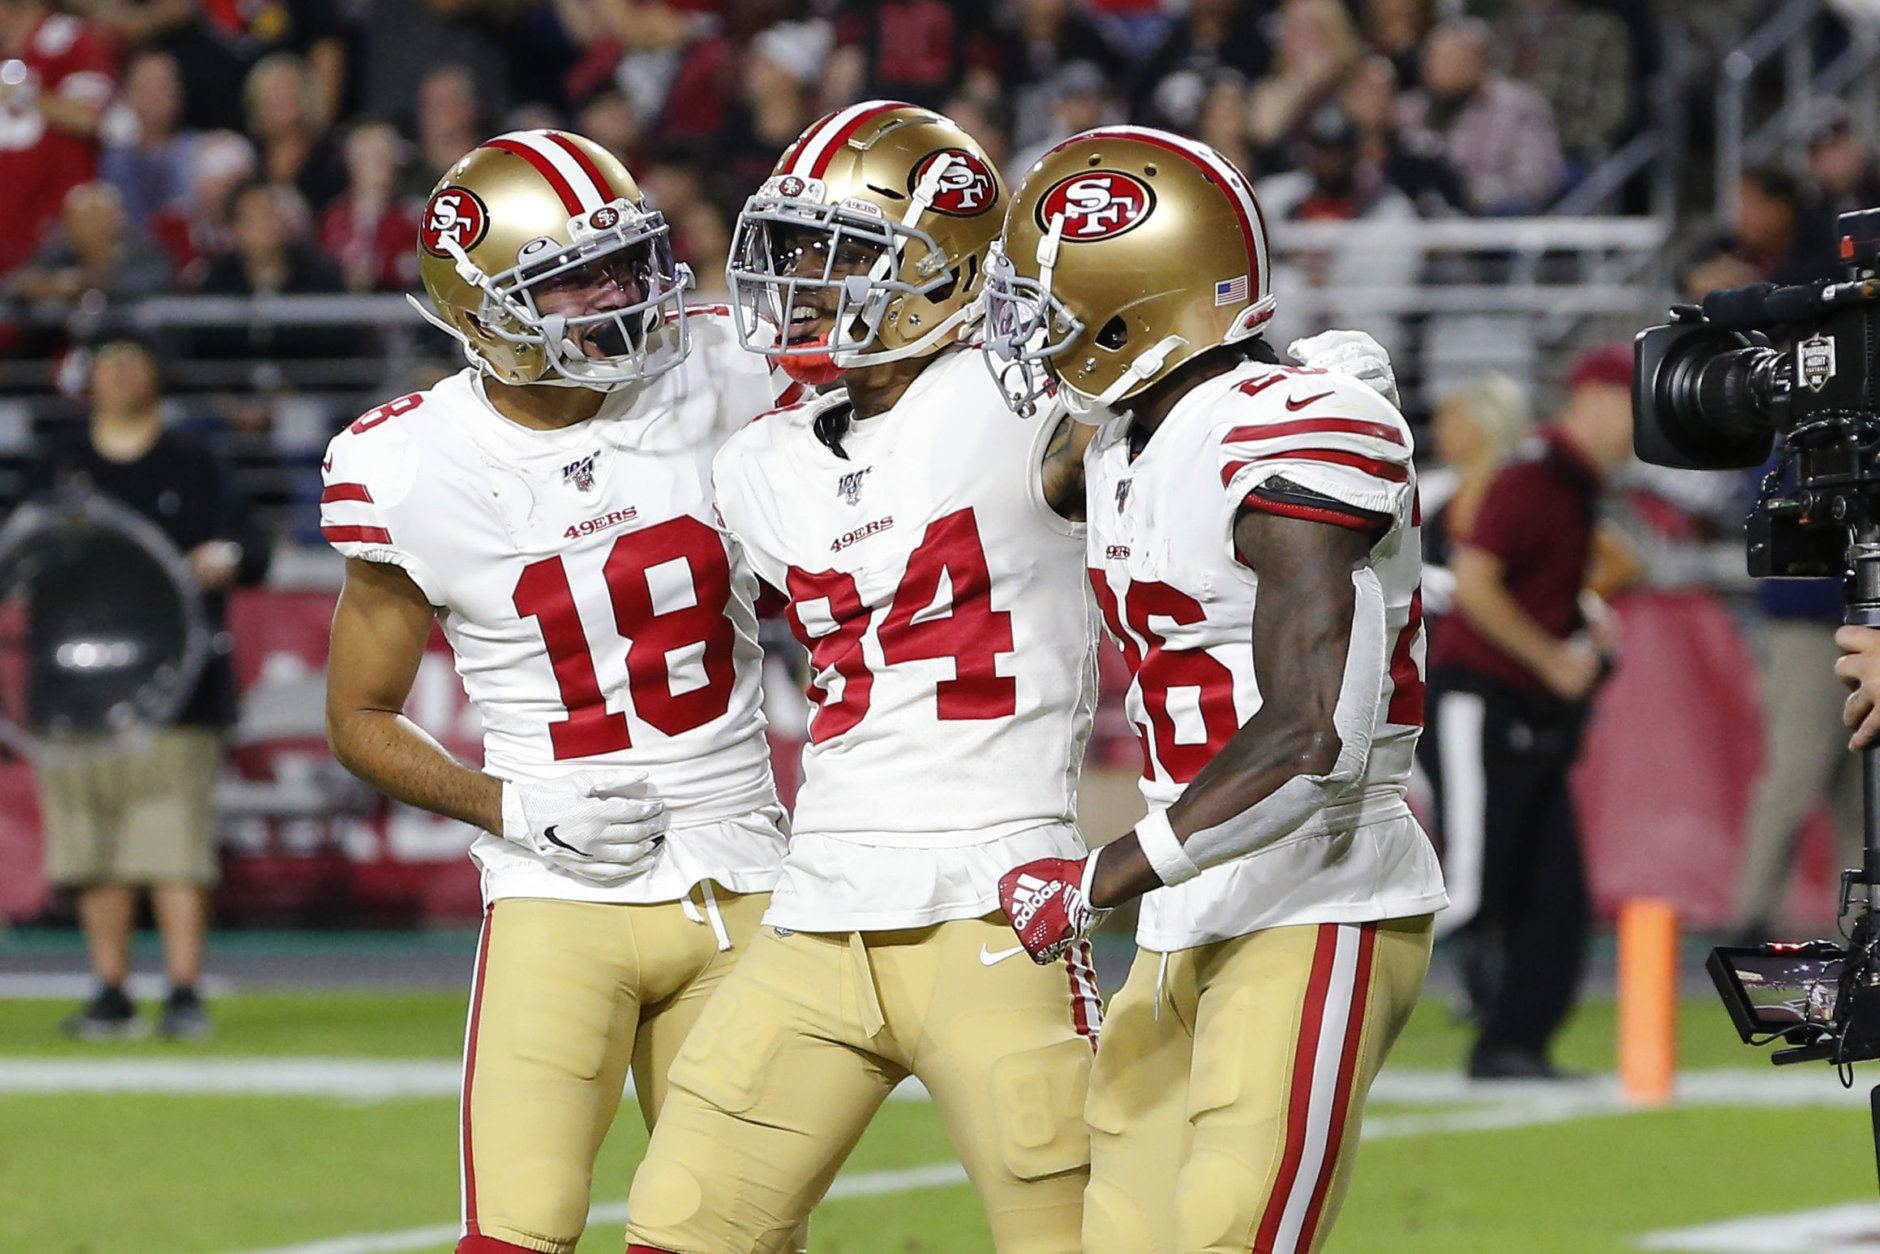 <p><b>Most Surprising Team: San Francisco 49ers</b></p> <p>Most people thought San Fran would be good in Year 3 of the Kyle Shanahan-John Lynch era, but I don&#8217;t know anyone who thought they&#8217;d be the last undefeated team in the league halfway through the season. Jimmy Garoppolo is starting to look like the franchise QB everyone assumed him to be. The run game is dominant and so is the defense. They&#8217;ll probably come back down to earth once they embark on a tougher second-half schedule but nobody wants to see this team in the playoffs.</p> <p><i>Honorable mention: Indianapolis Colts, Buffalo Bills, Green Bay Packers</i></p>